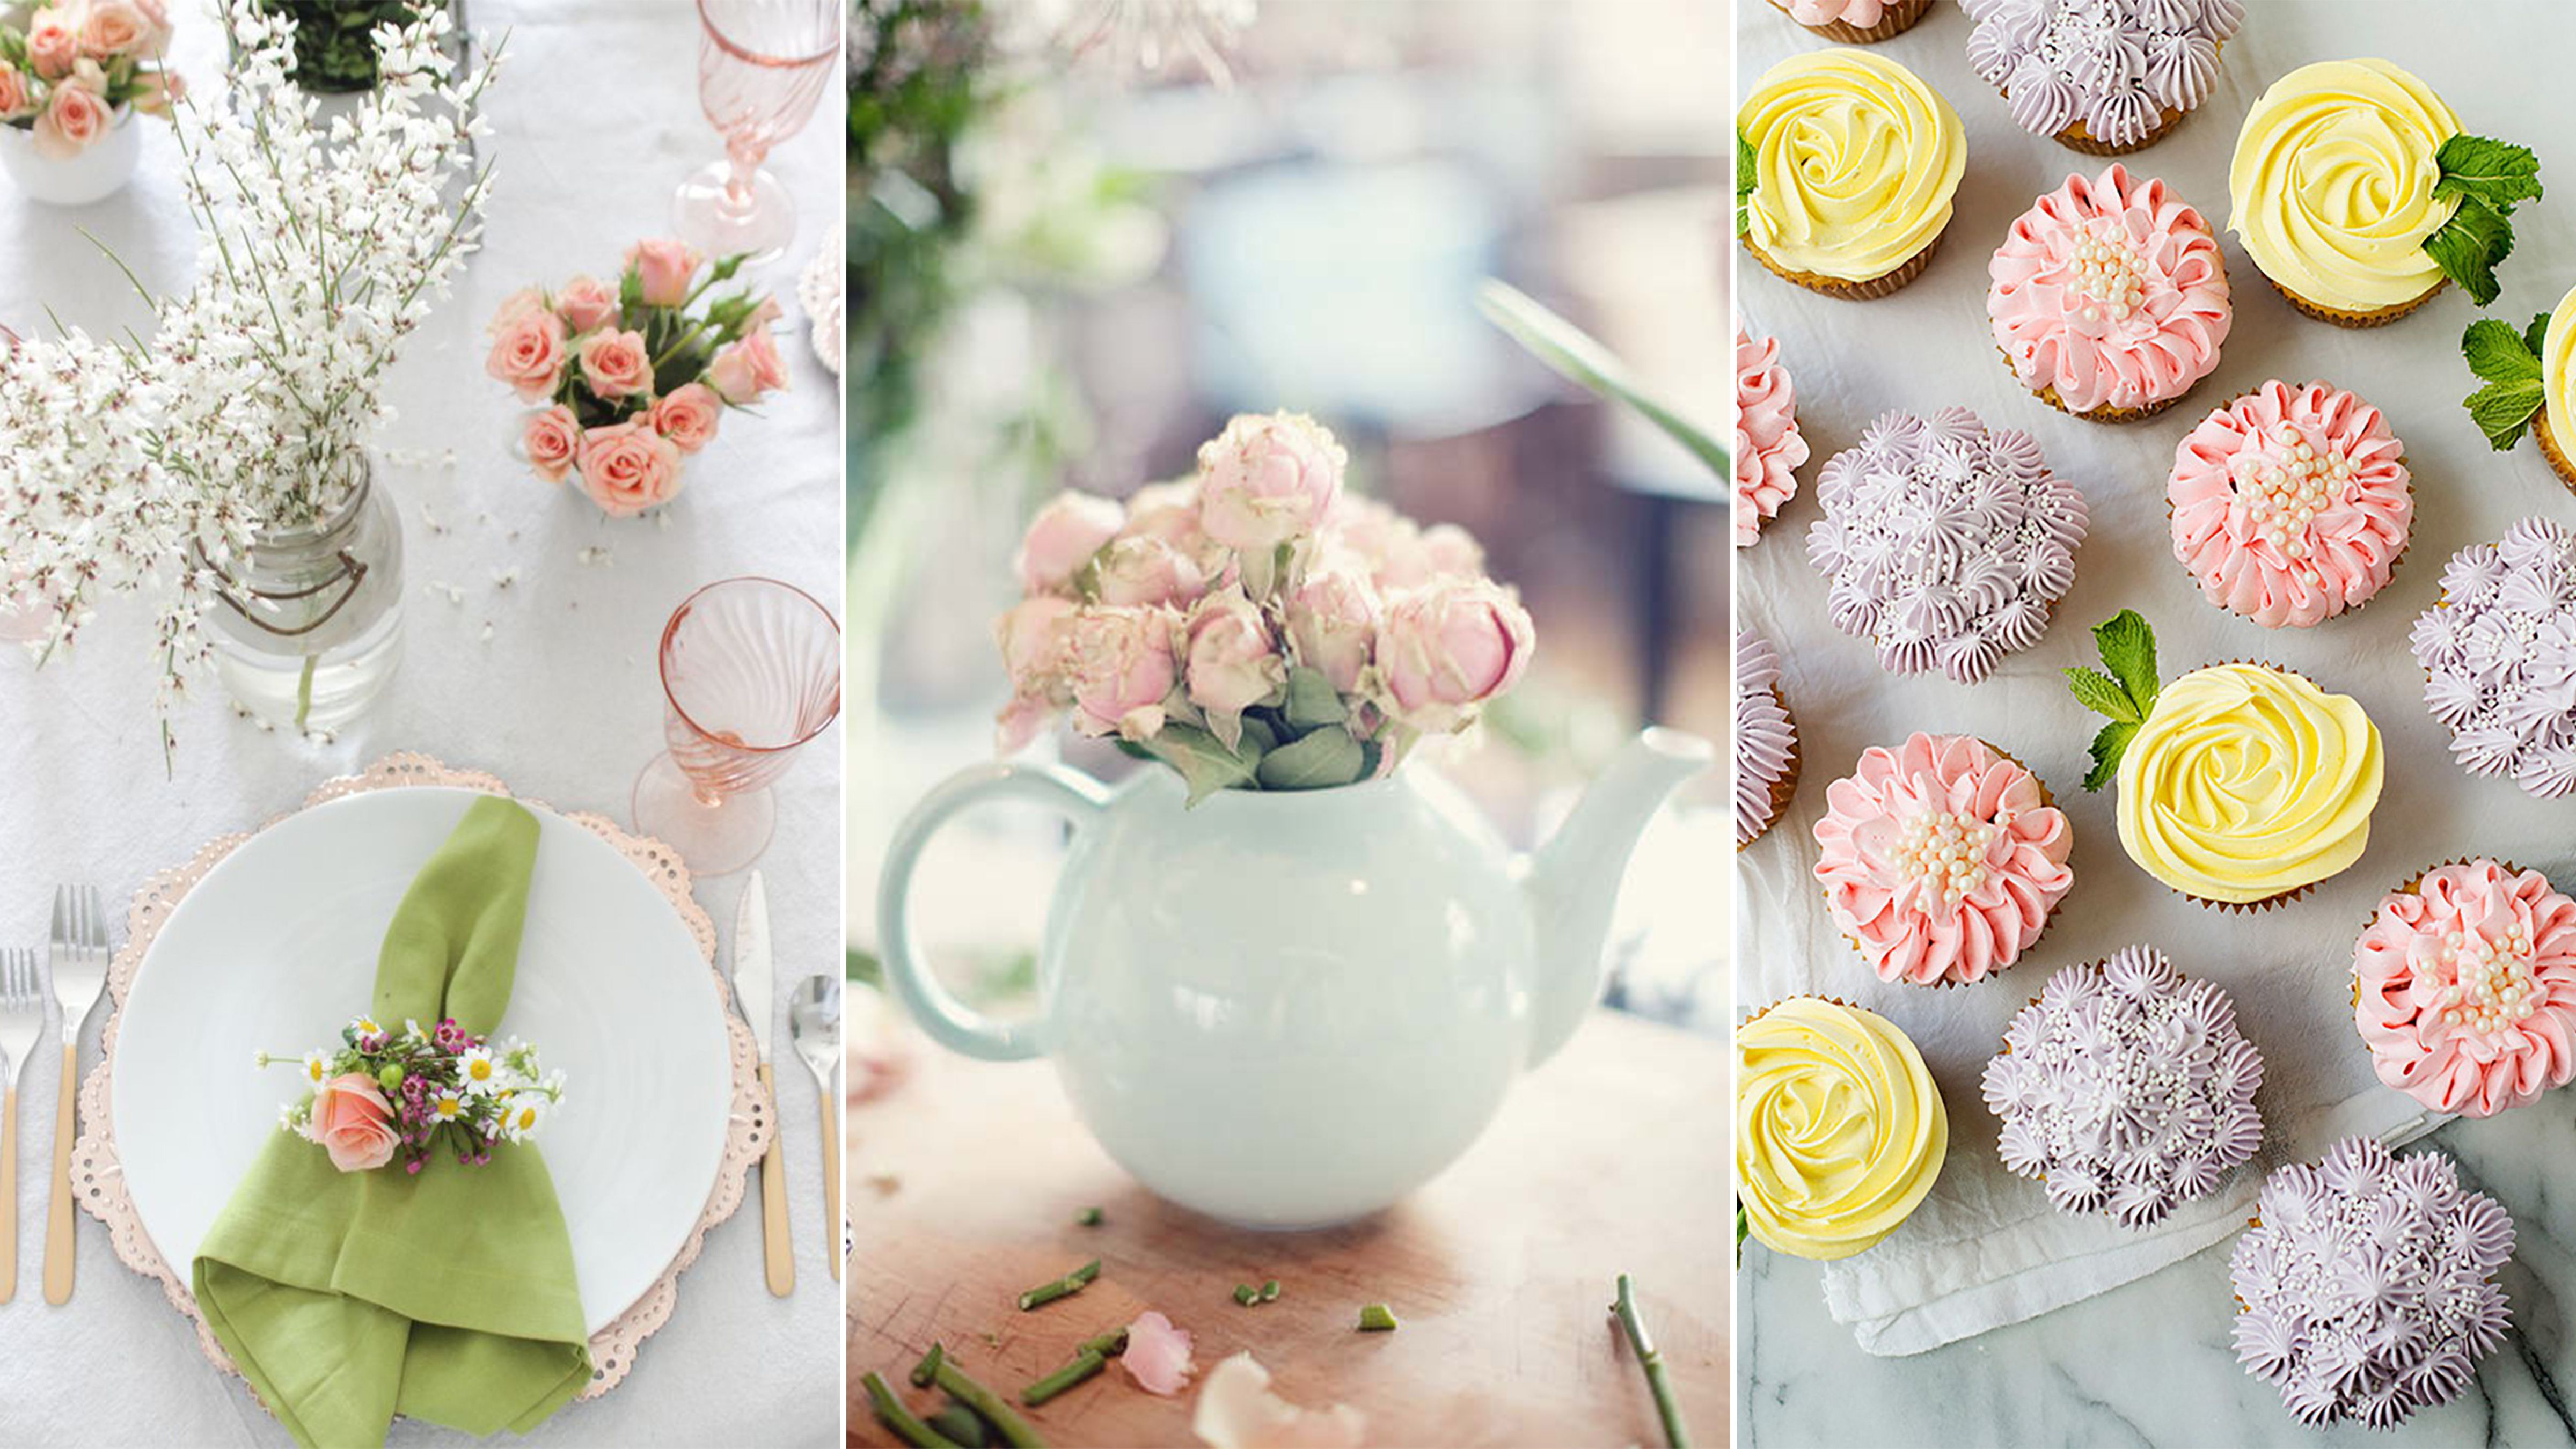 Ordinaire Garden Party Ideas